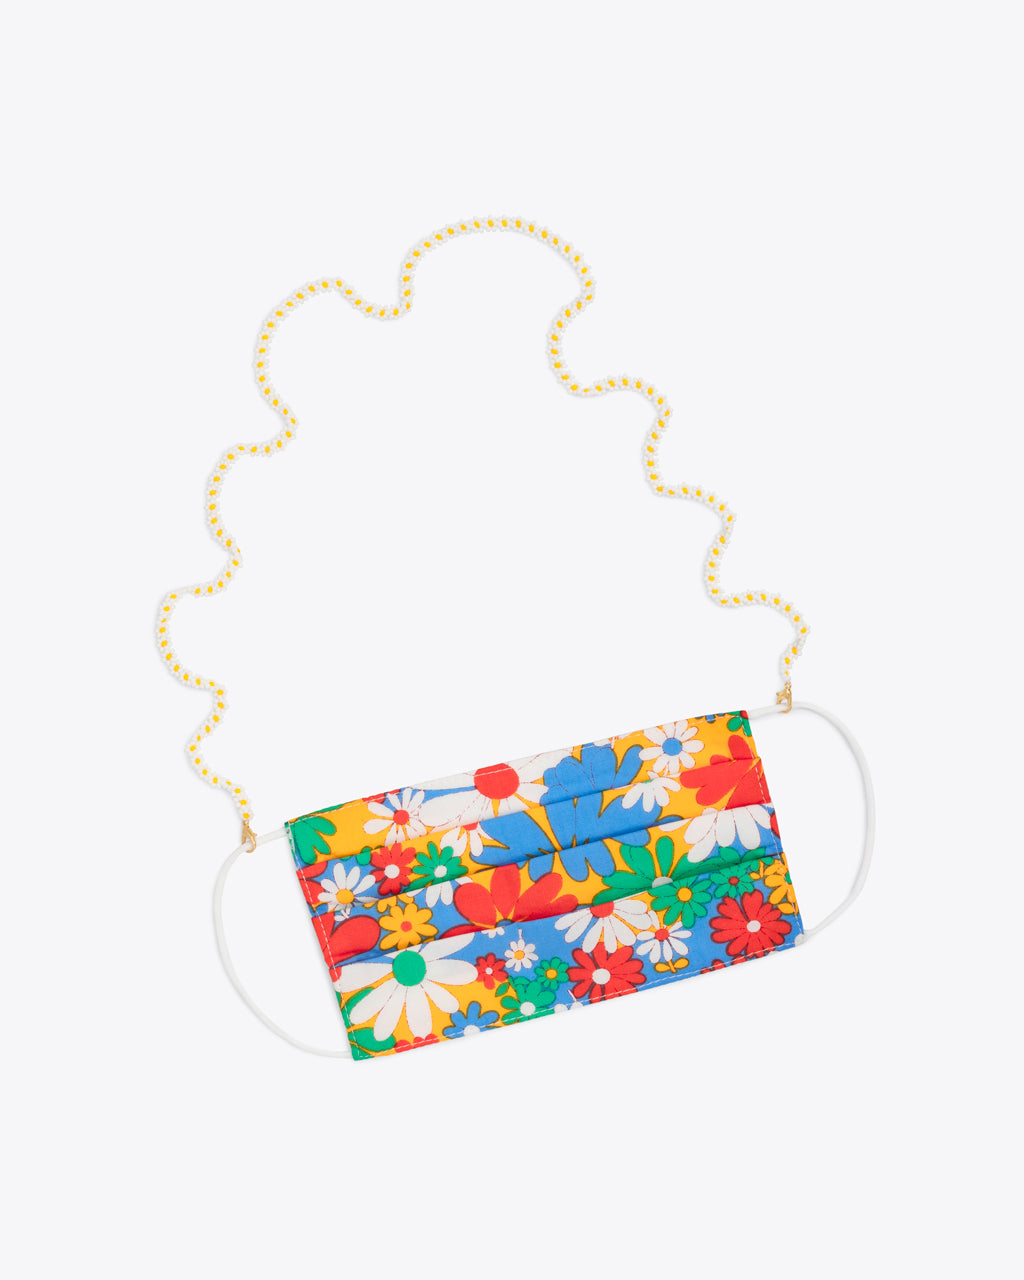 white daisy accessory chain shown on floral face mask